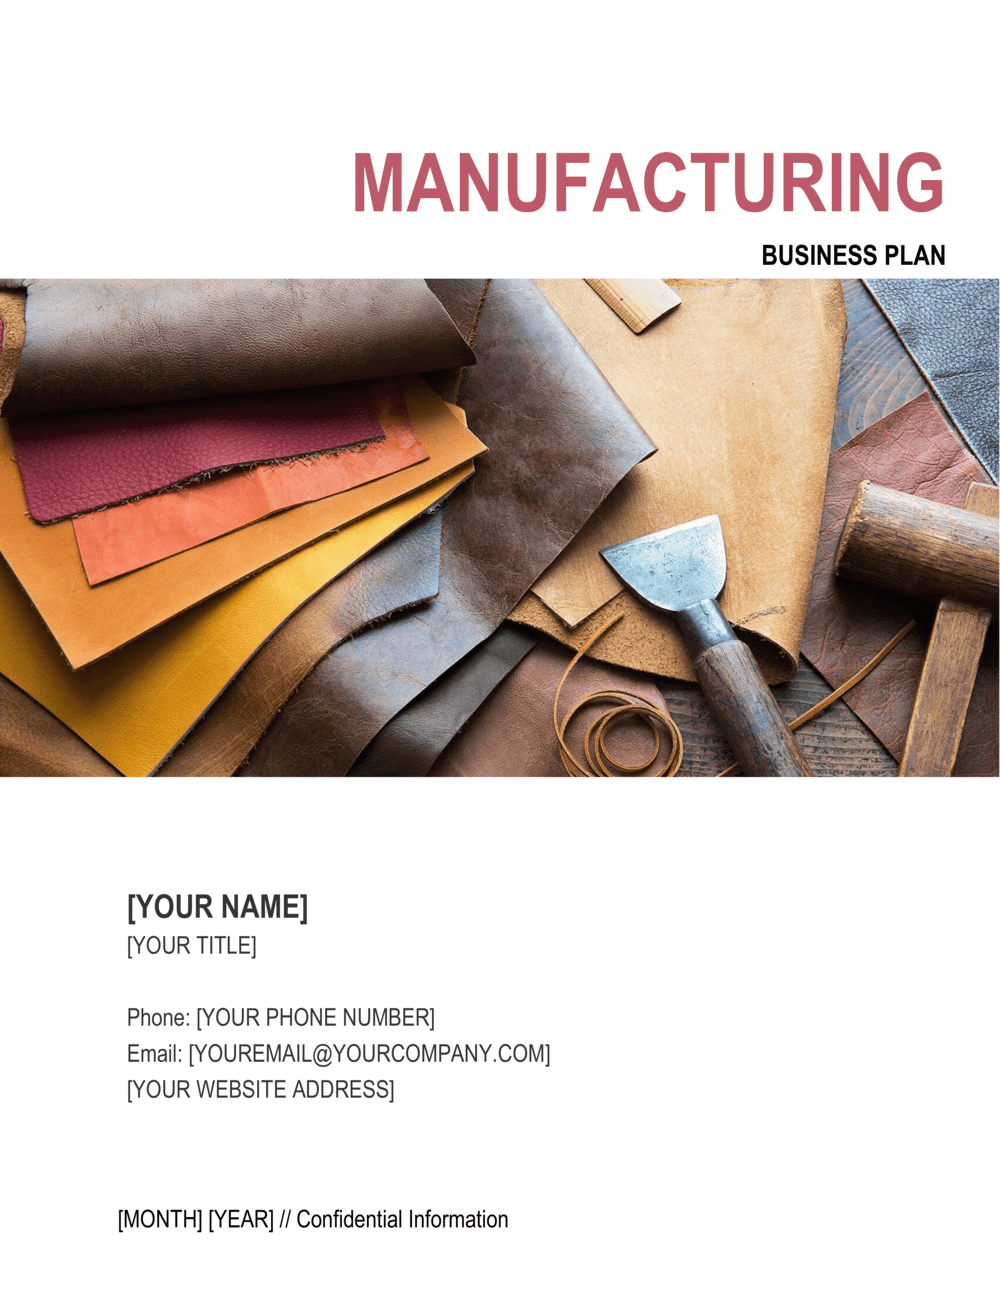 Business-in-a-Box's Manufacturing Business Plan 3 Template